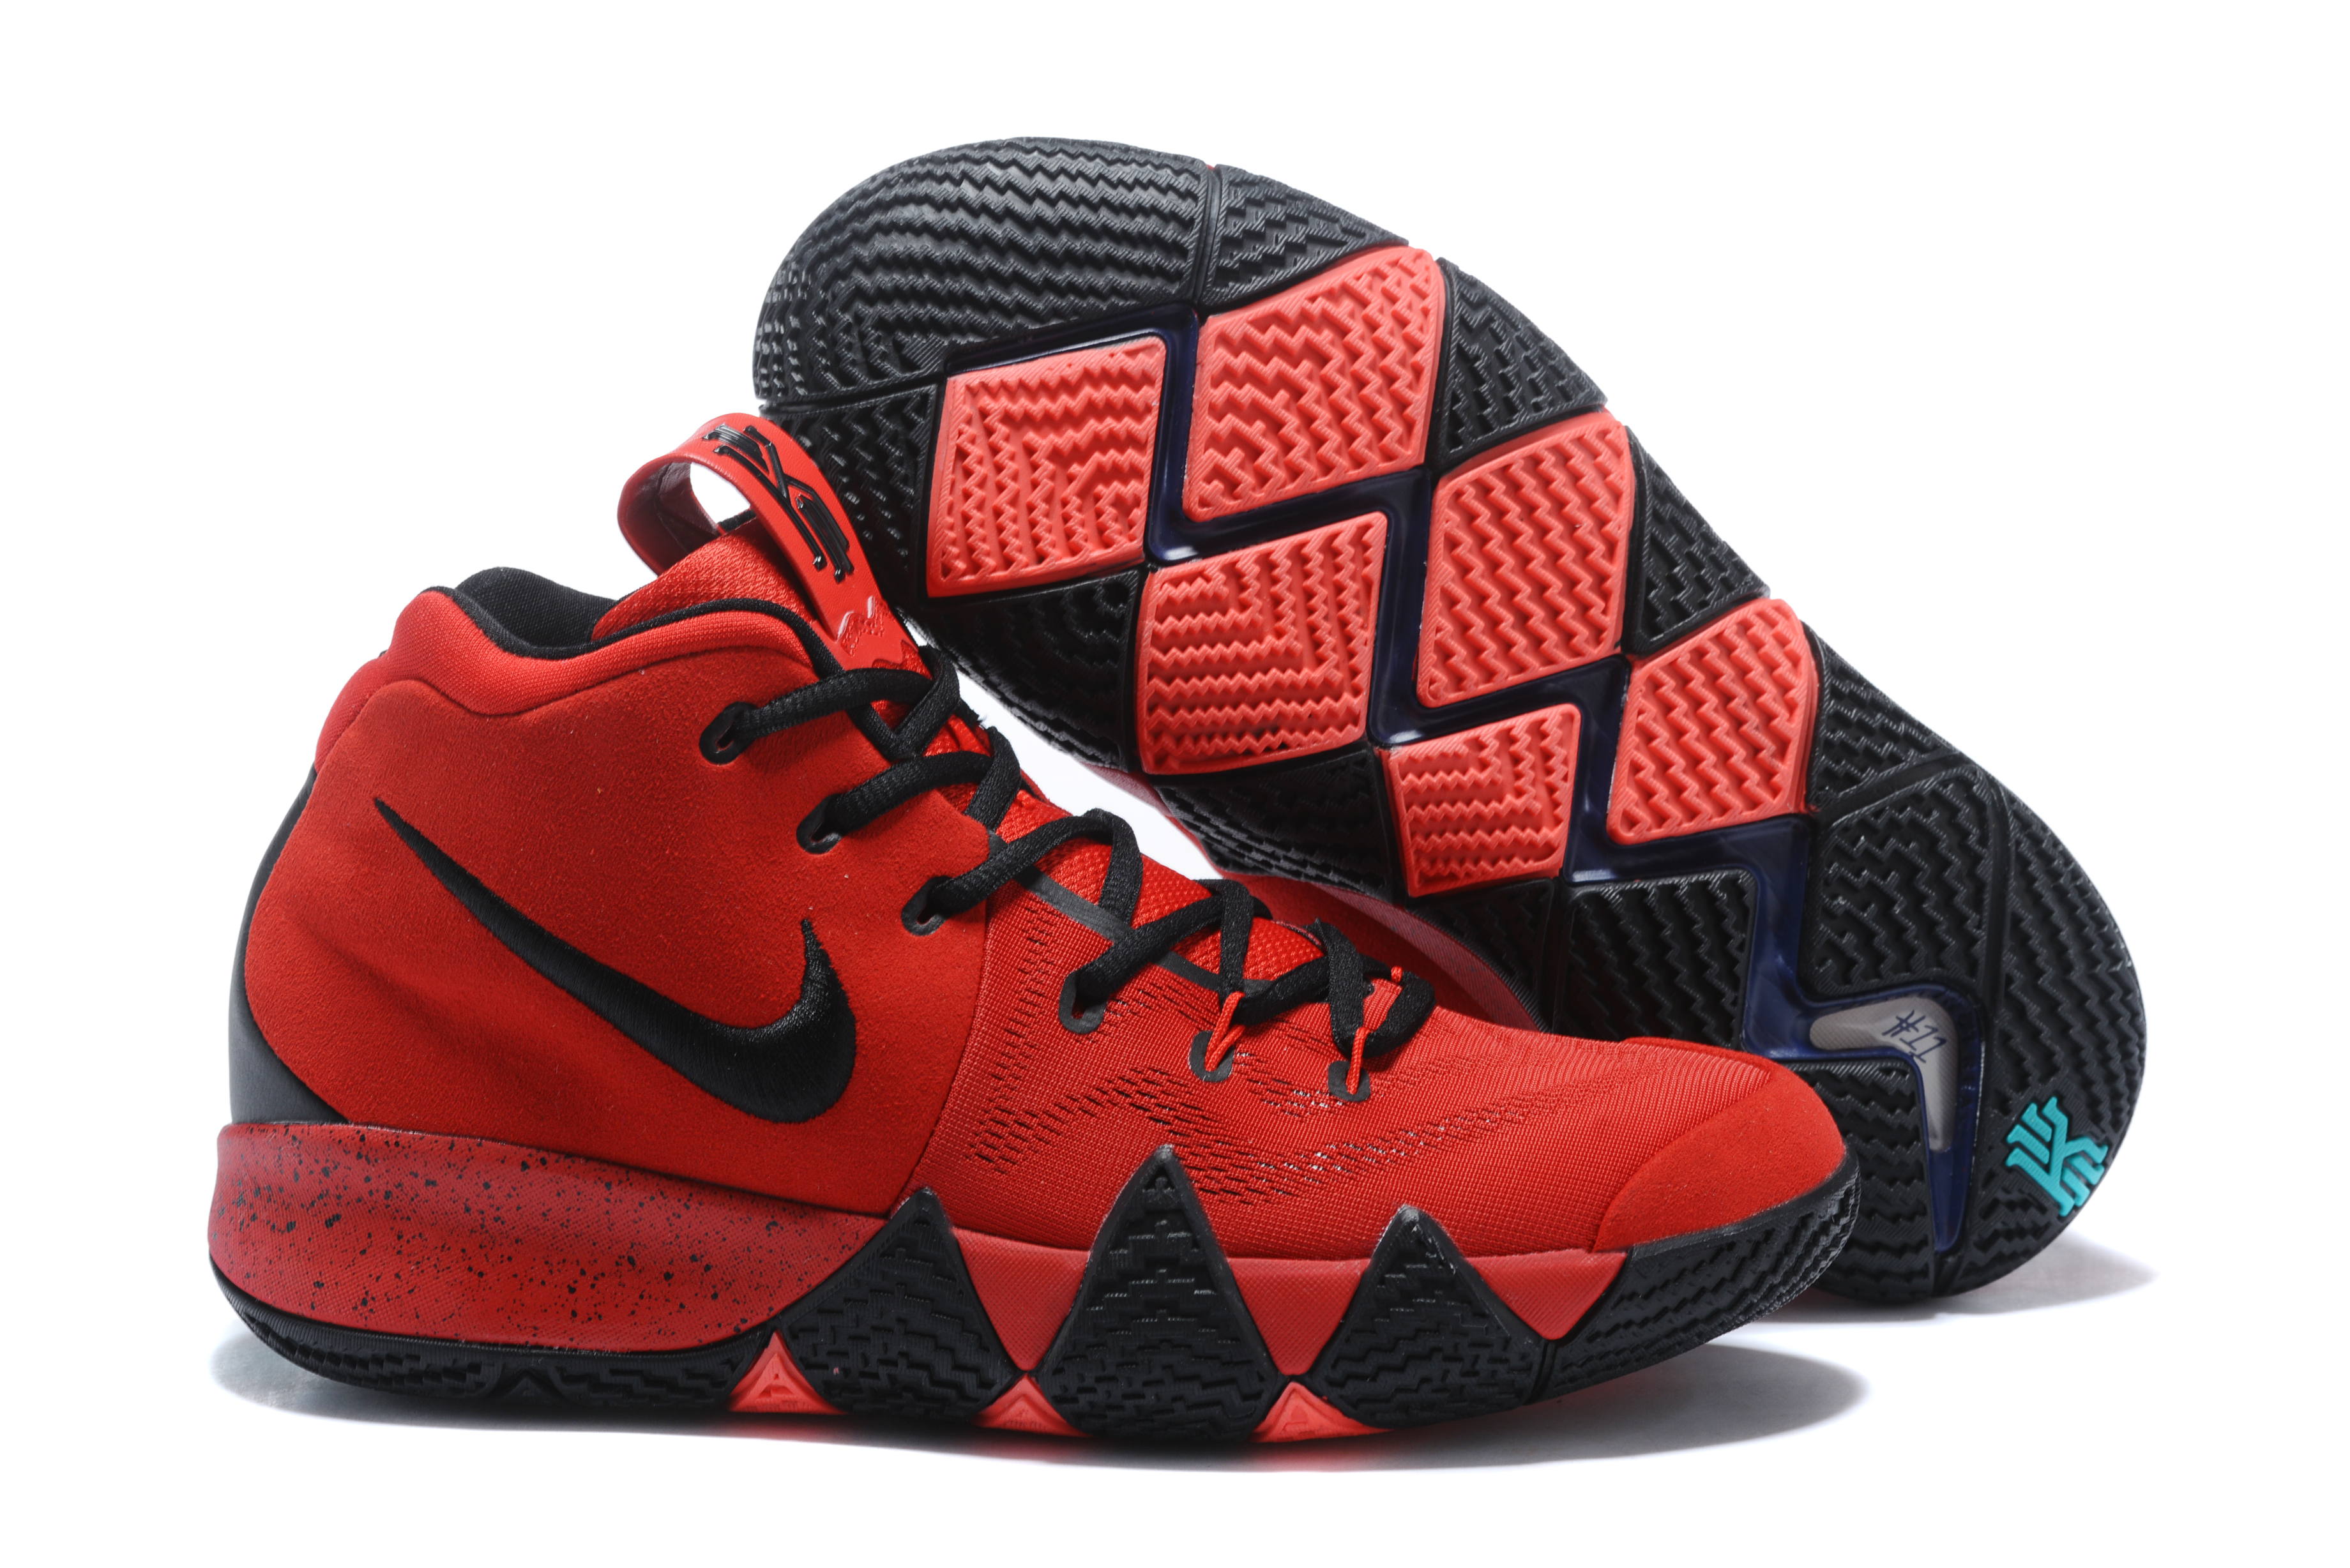 new arrival 5437b a980f New Style Nike Kyrie 4 Red Black